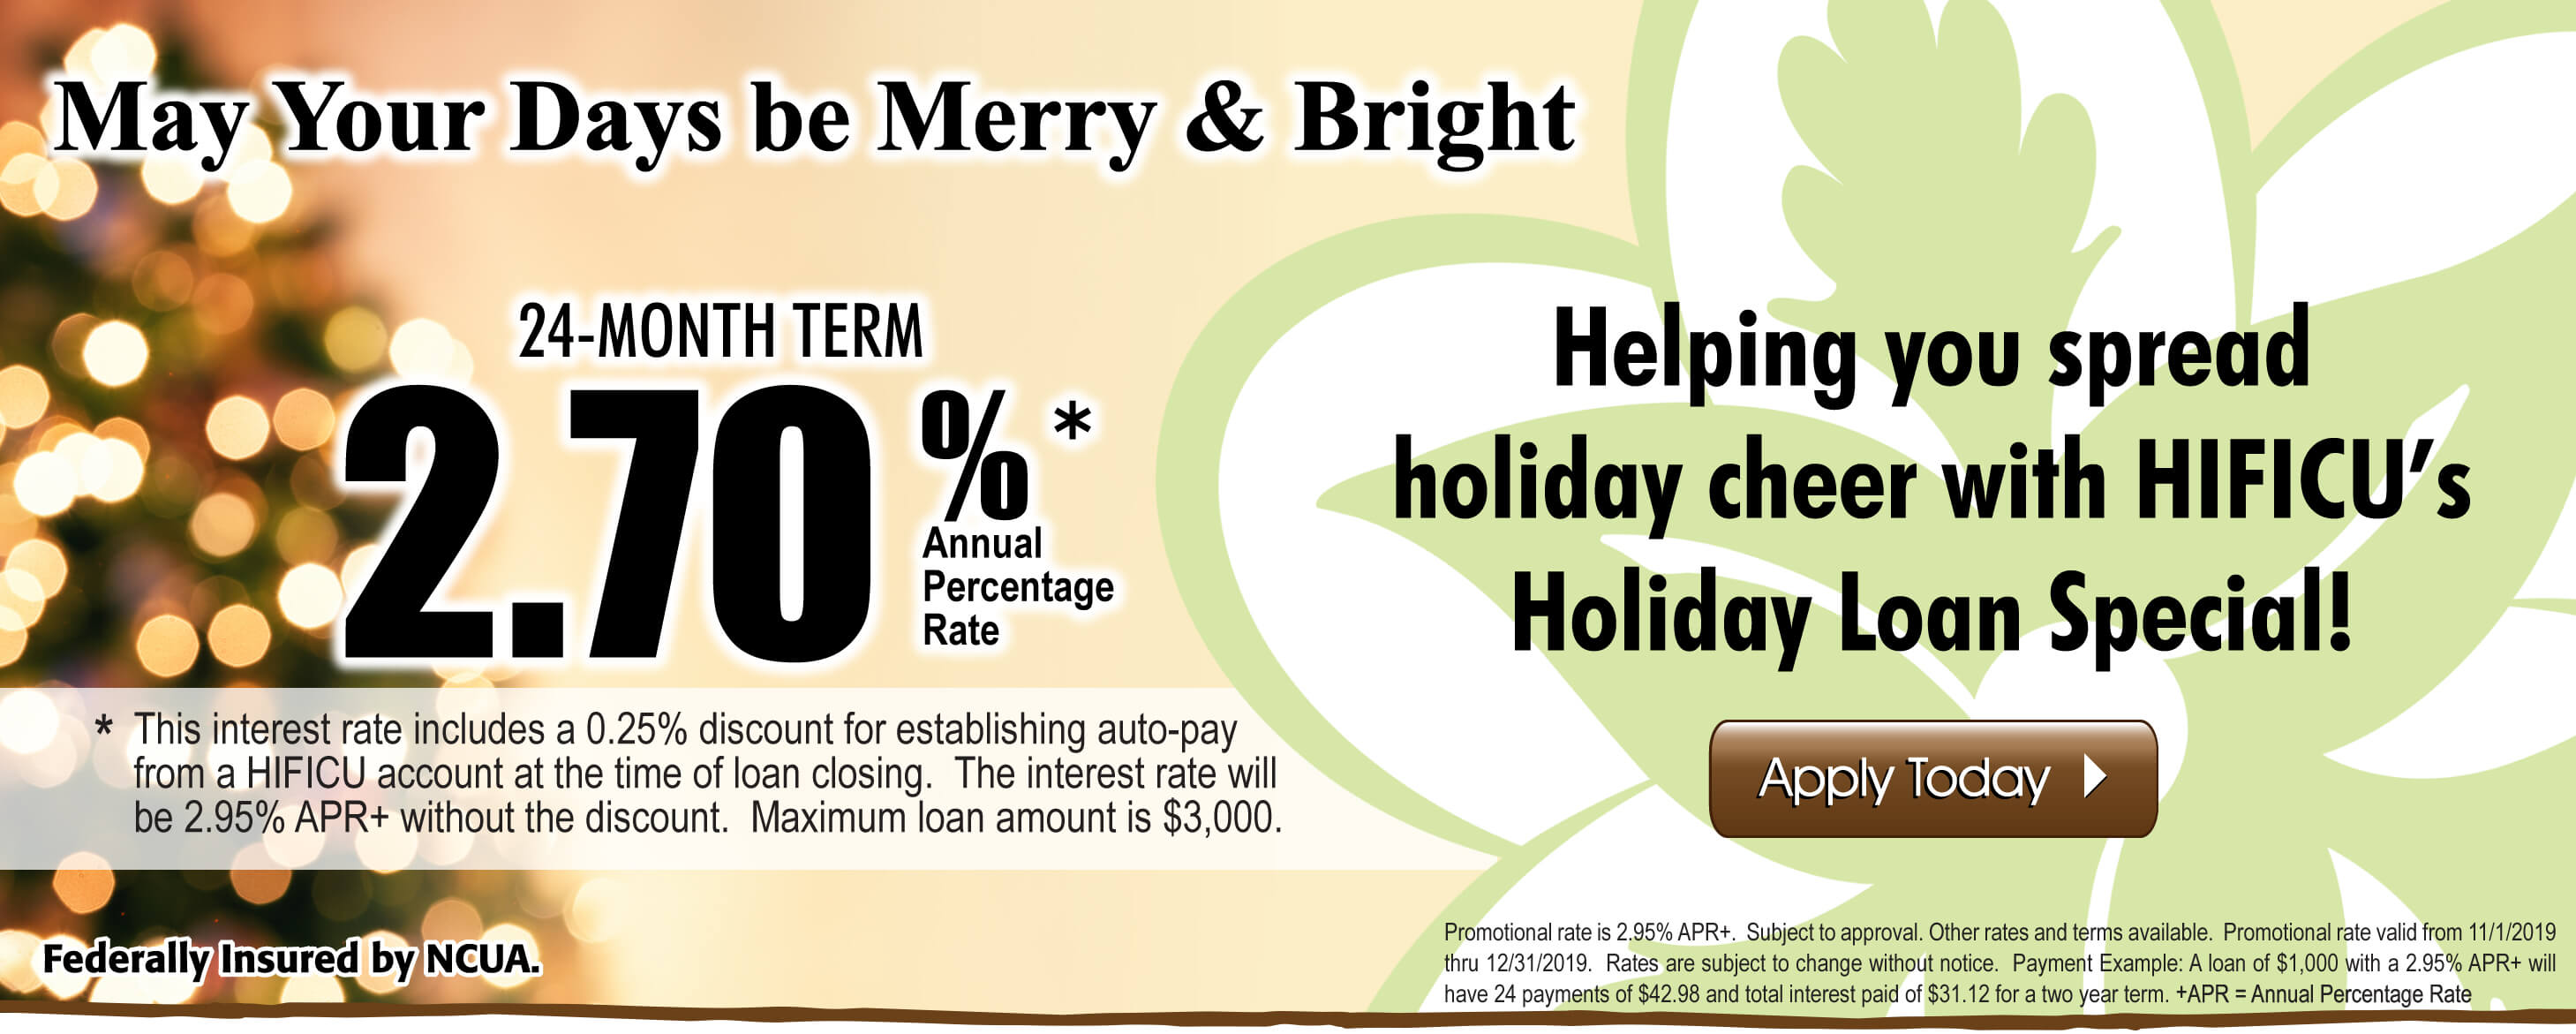 May your days be merry and bright!  Spread holiday cheer with HIFICU's Holiday Loan Special!